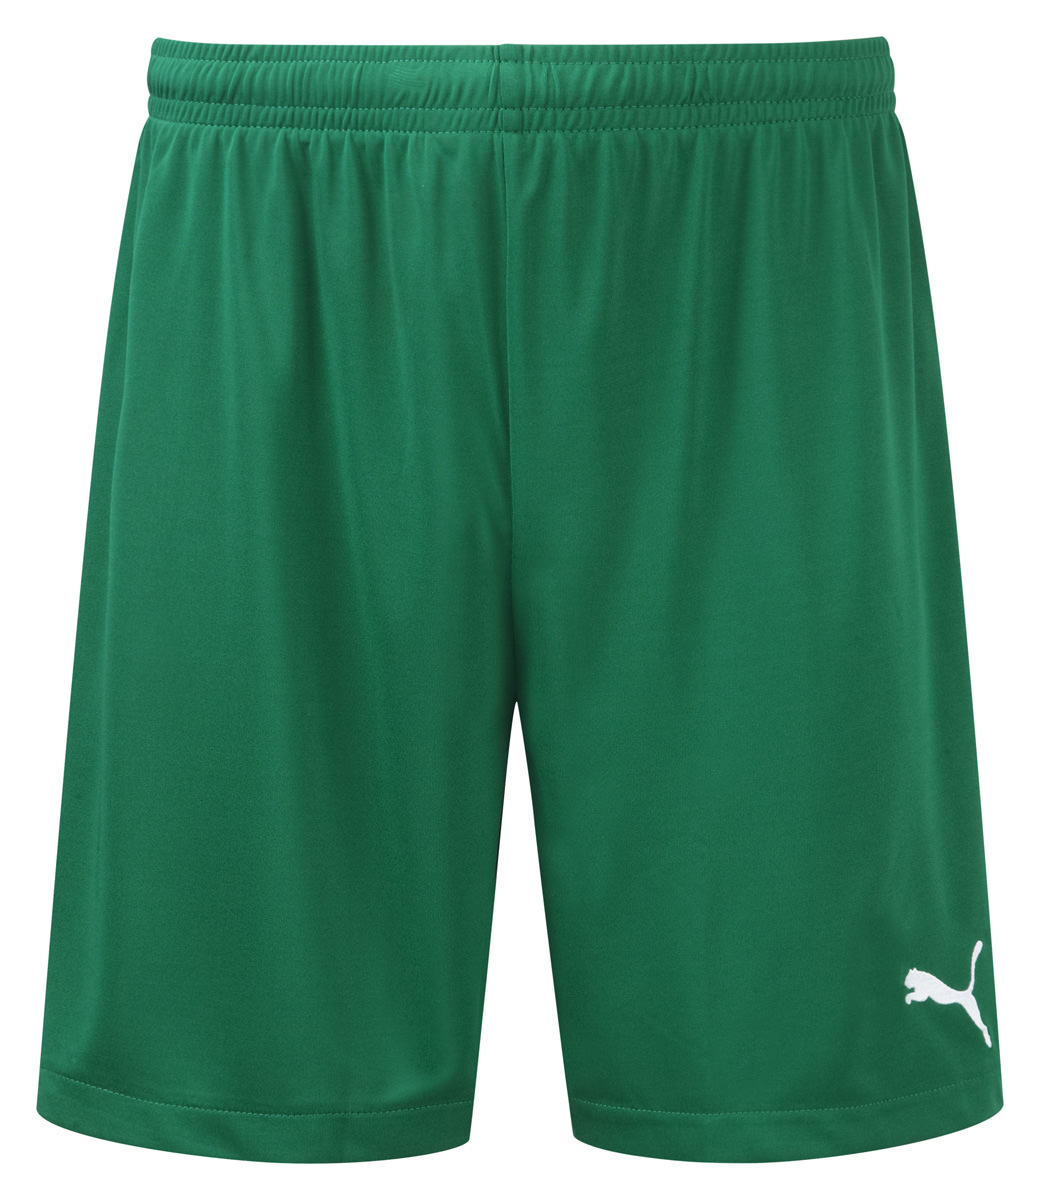 Puma SMU Velize Shorts - Green